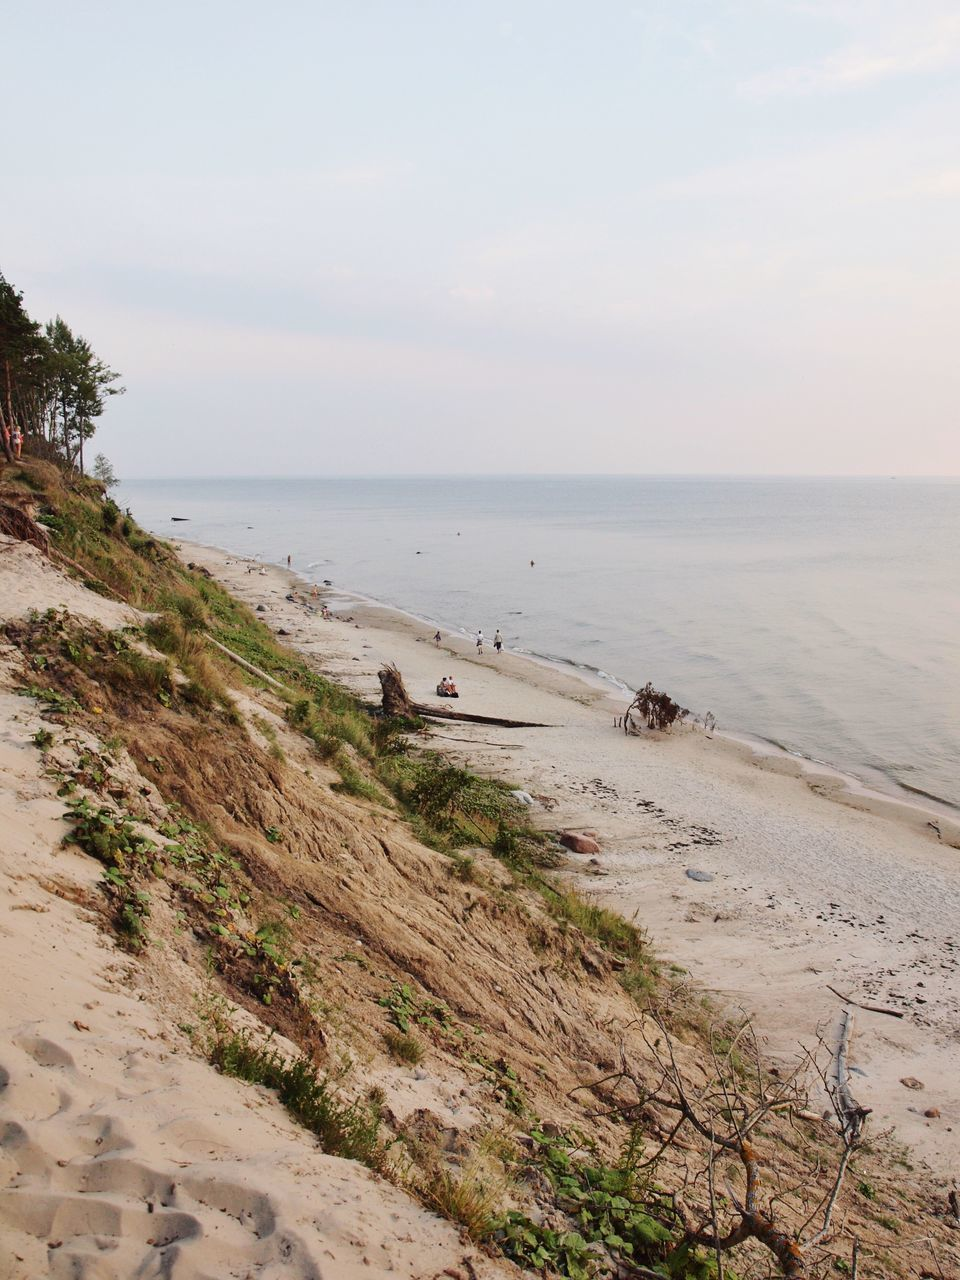 sea, beach, shore, sand, water, nature, scenics, horizon over water, tranquility, beauty in nature, tranquil scene, sky, outdoors, no people, day